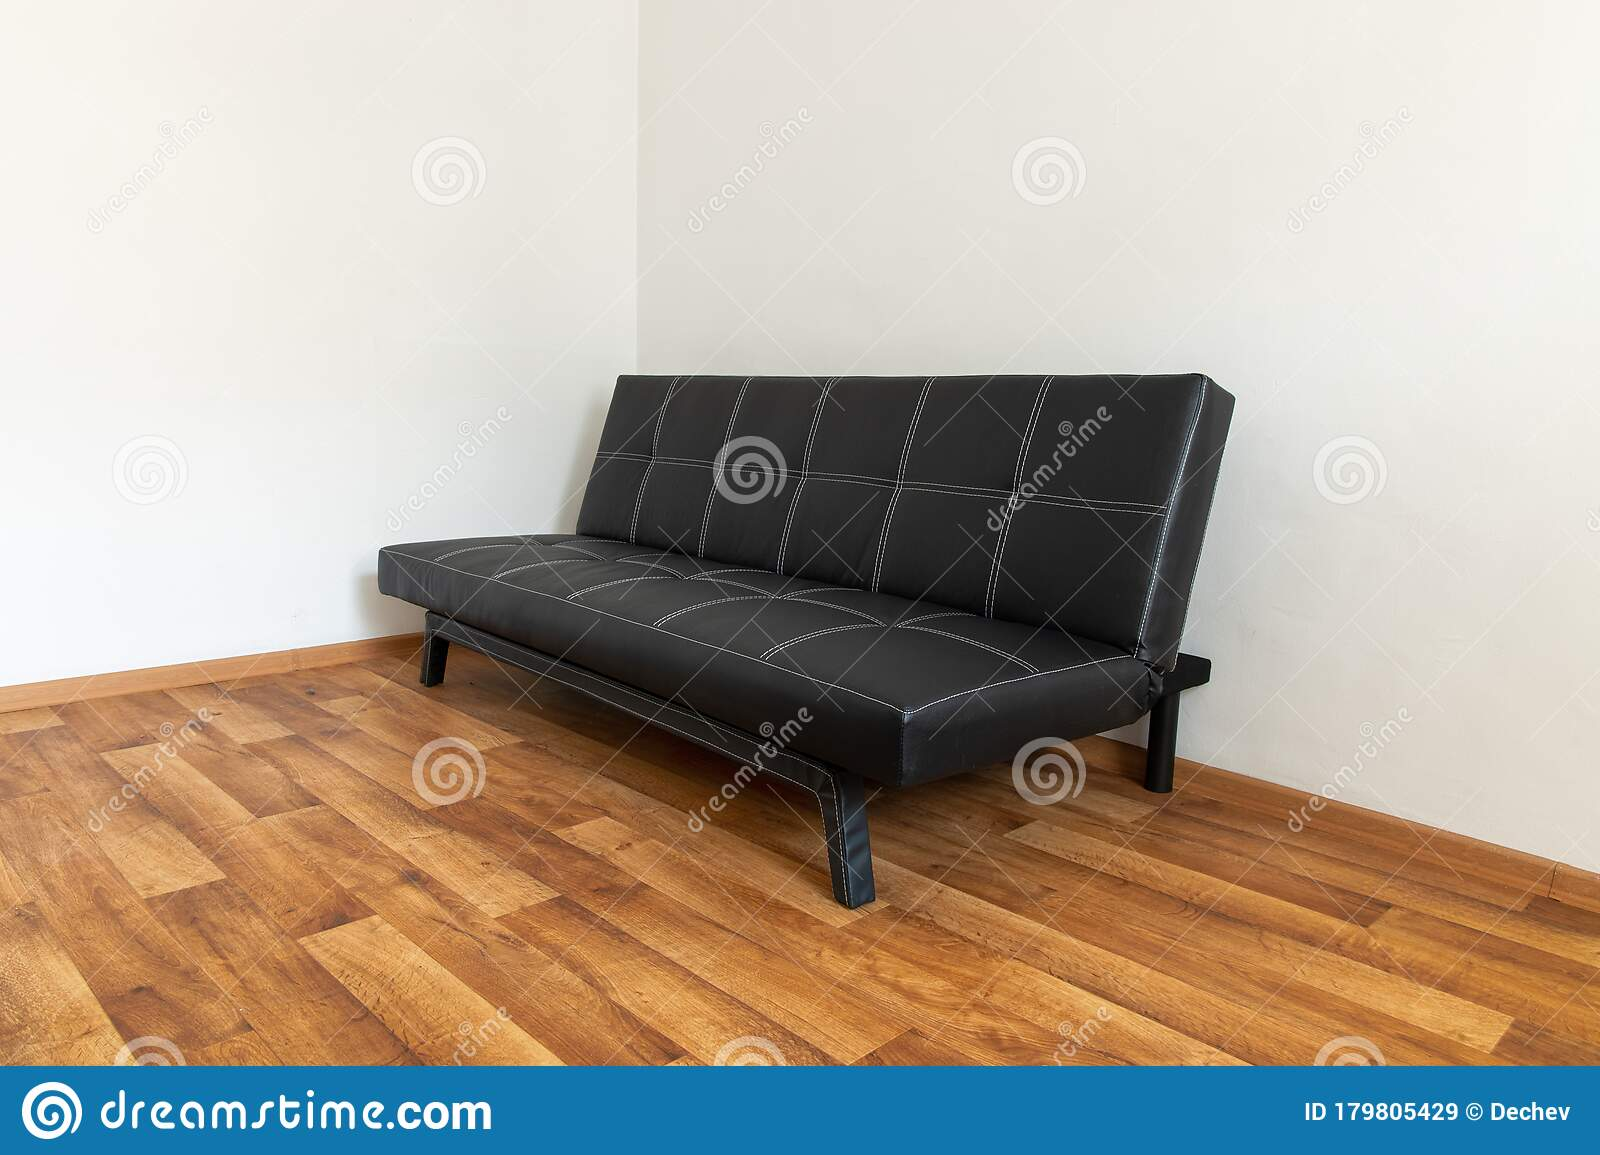 Modern Black Leather Convertible Sofa Bed Wooden Floor Empty Waiting Room With A Modern Black Sofa Stock Image Image Of Residential Clean 179805429